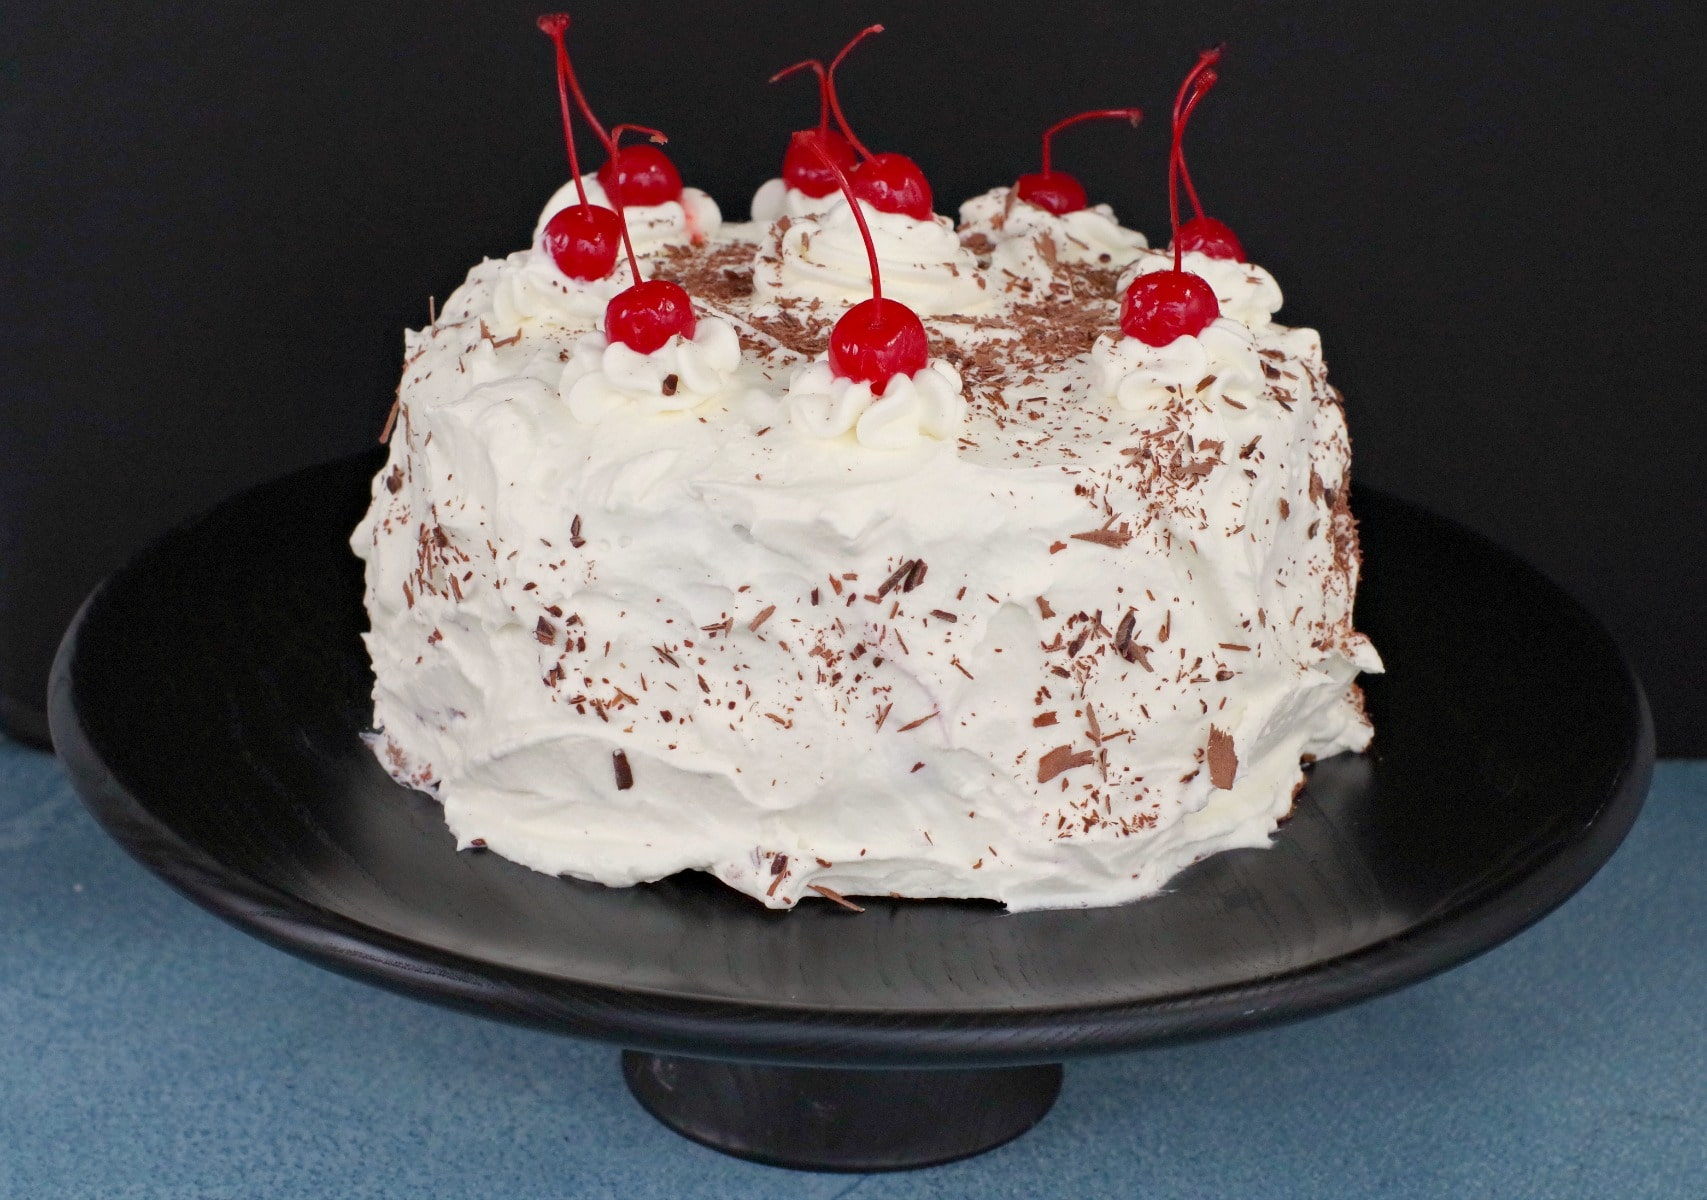 Whole black forest cake on black stand